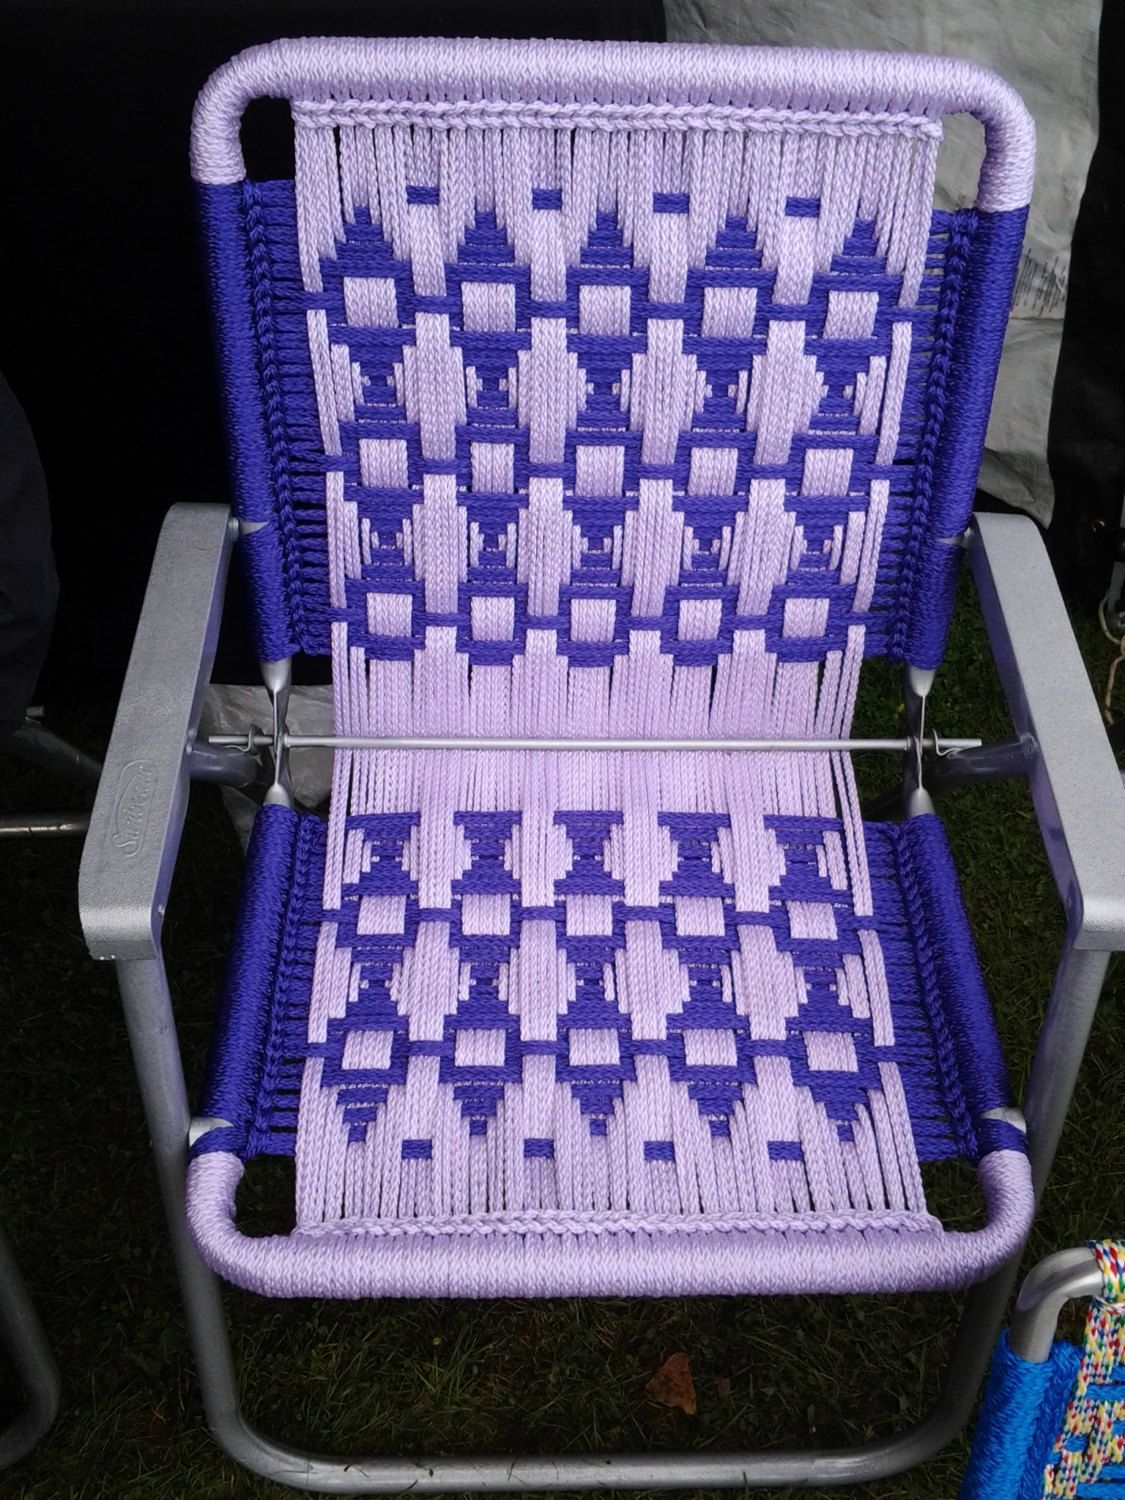 instructions for making macrame chairs